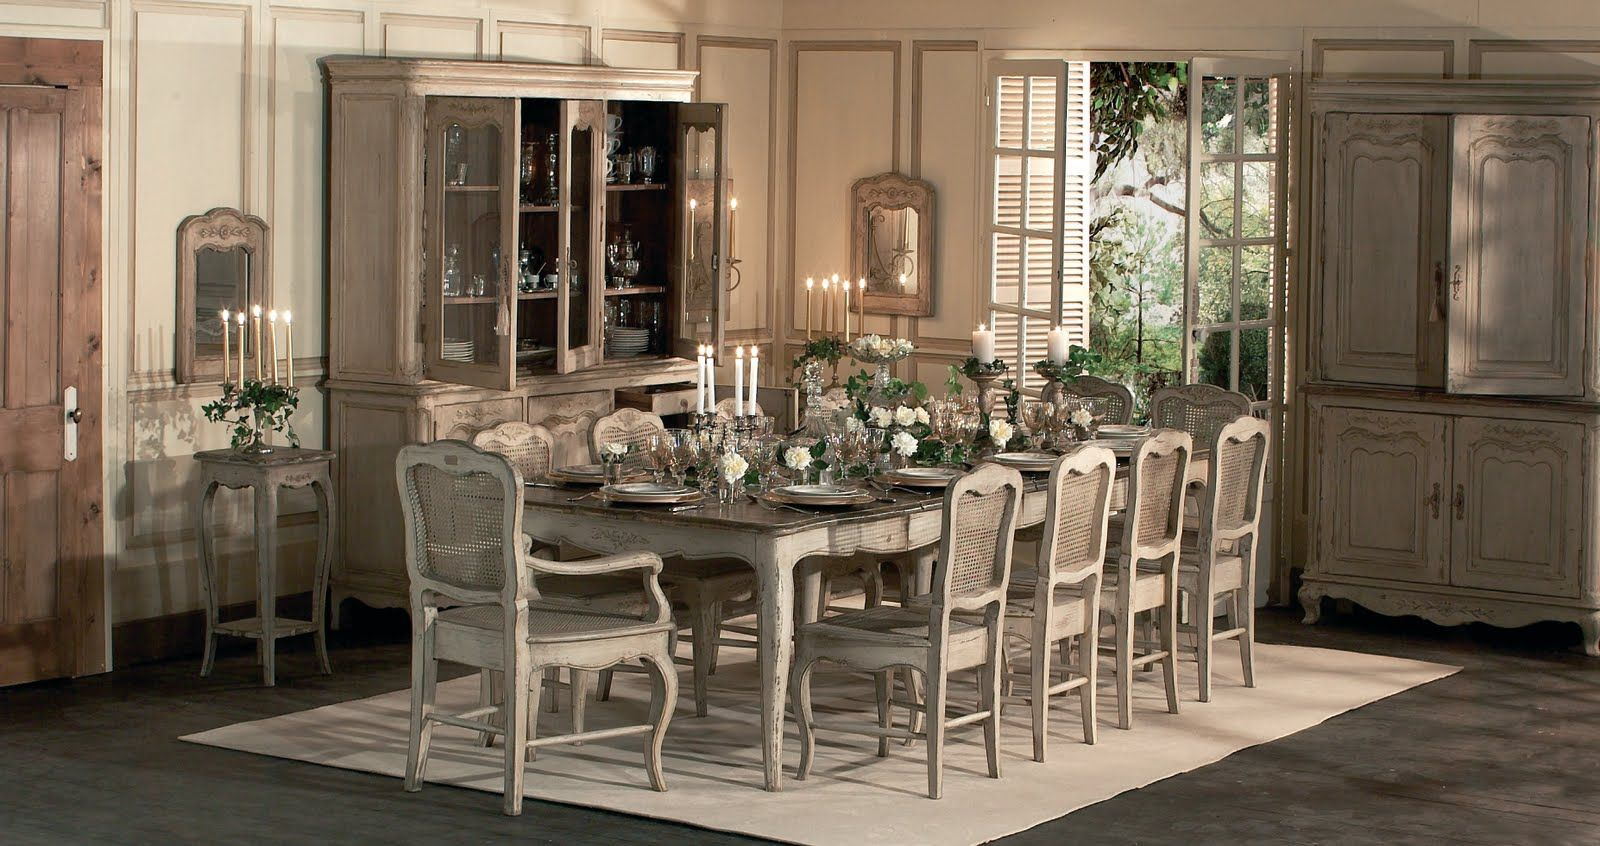 antique white wash dining set. ideas: french country dining room interior ideas with rustic decoration and luxury sets design also wooden cabinets classic candle holders: antique white wash set .